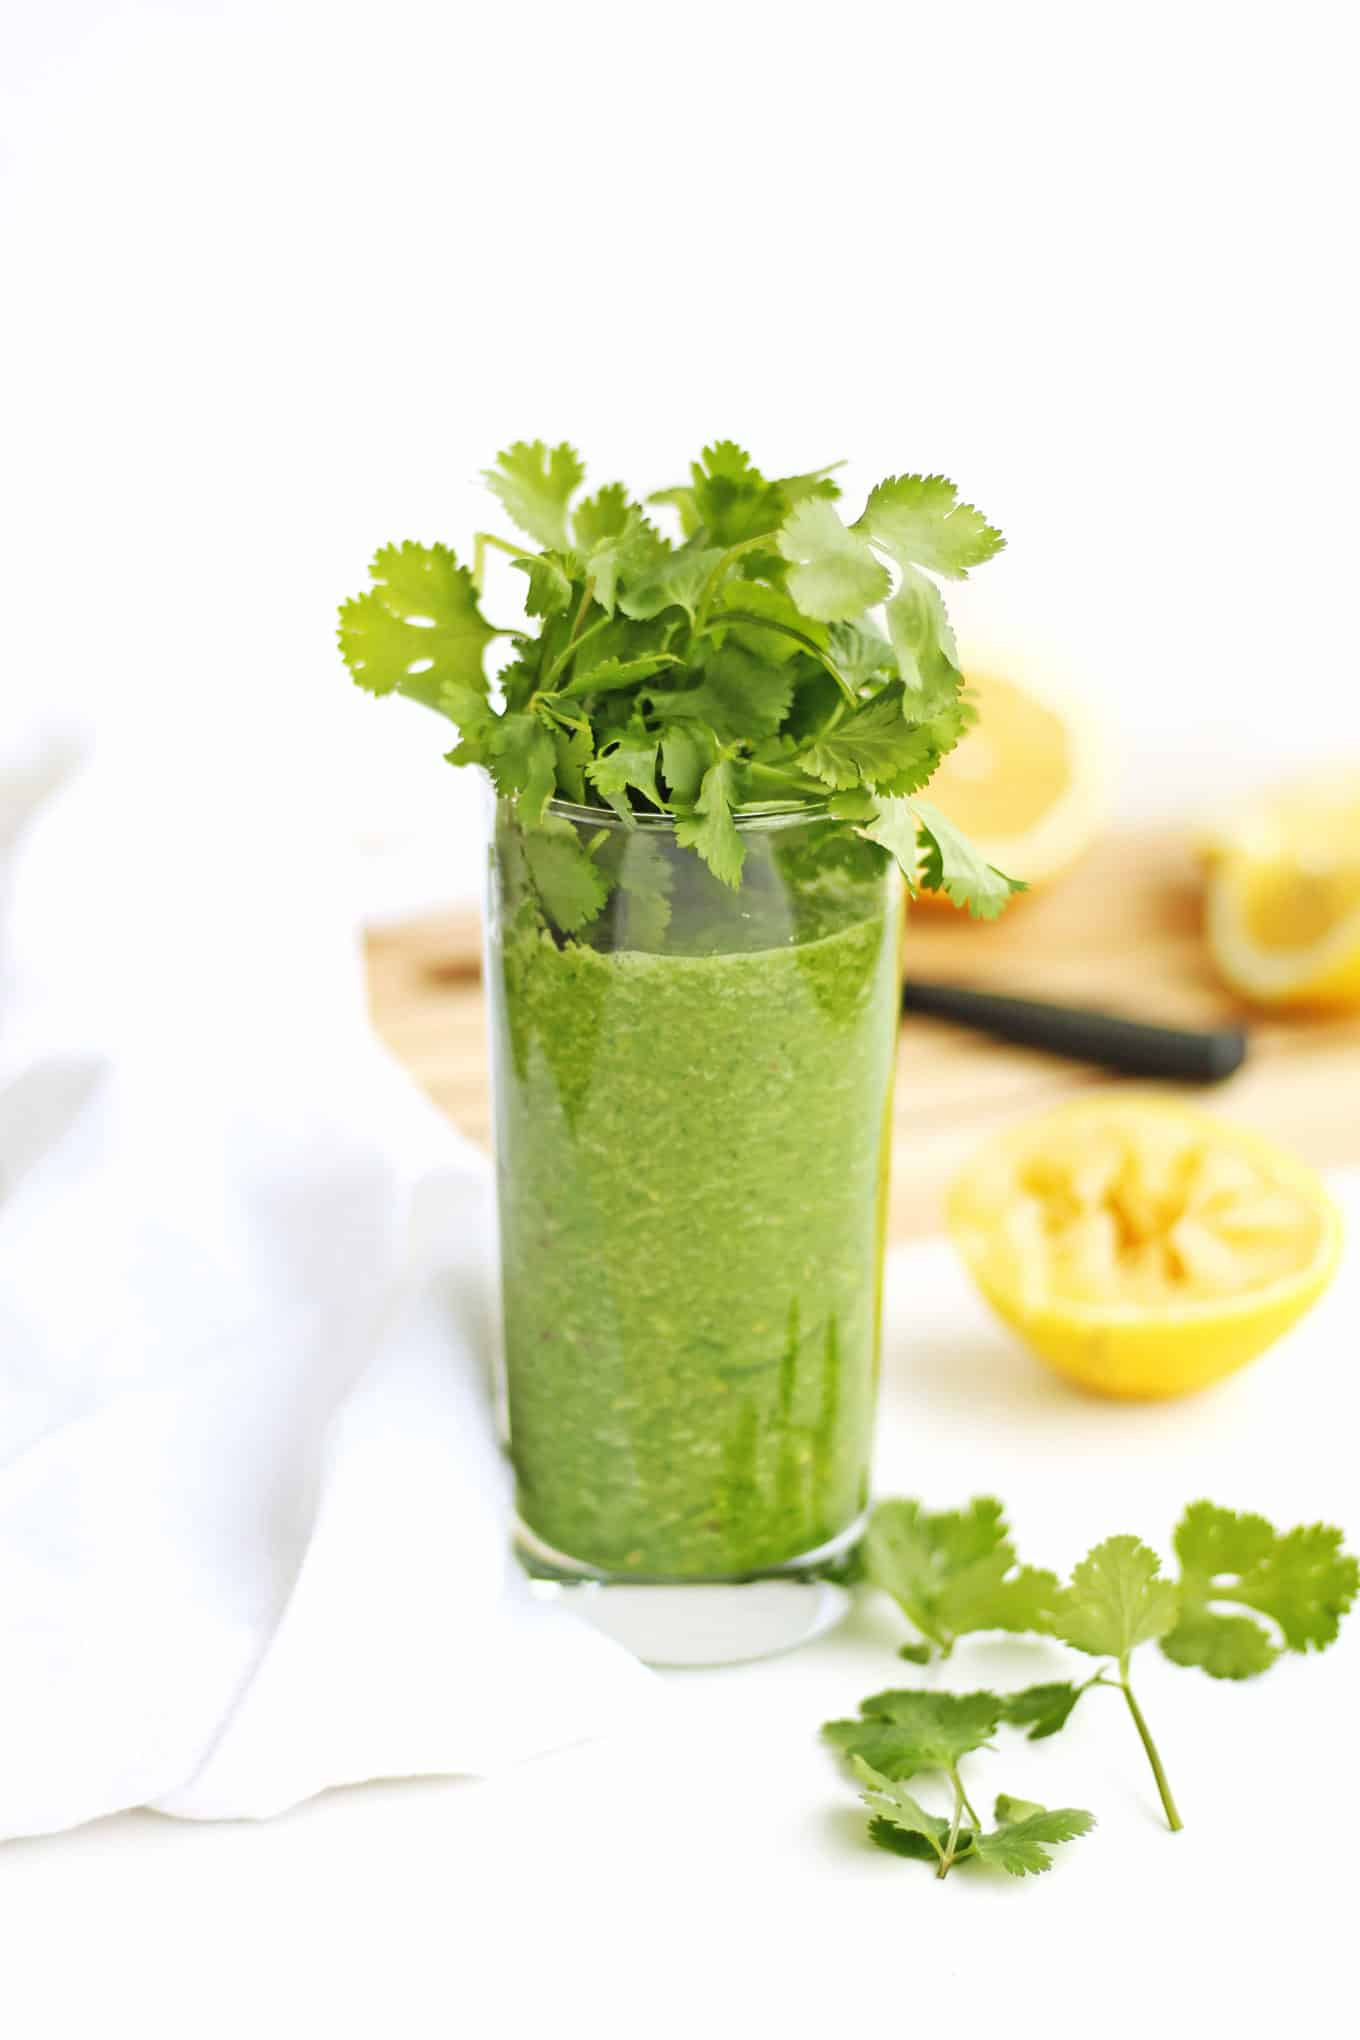 Glowing green detox smoothie recipe! // Rhubarbarians // Green smoothie / Heavy metal detox / Alkalizing smoothie / Cleansing / Antiaging / Superfood / #greensmoothie #detox #heavymetaldetox #antiaging #superfood #vegan #weightloss